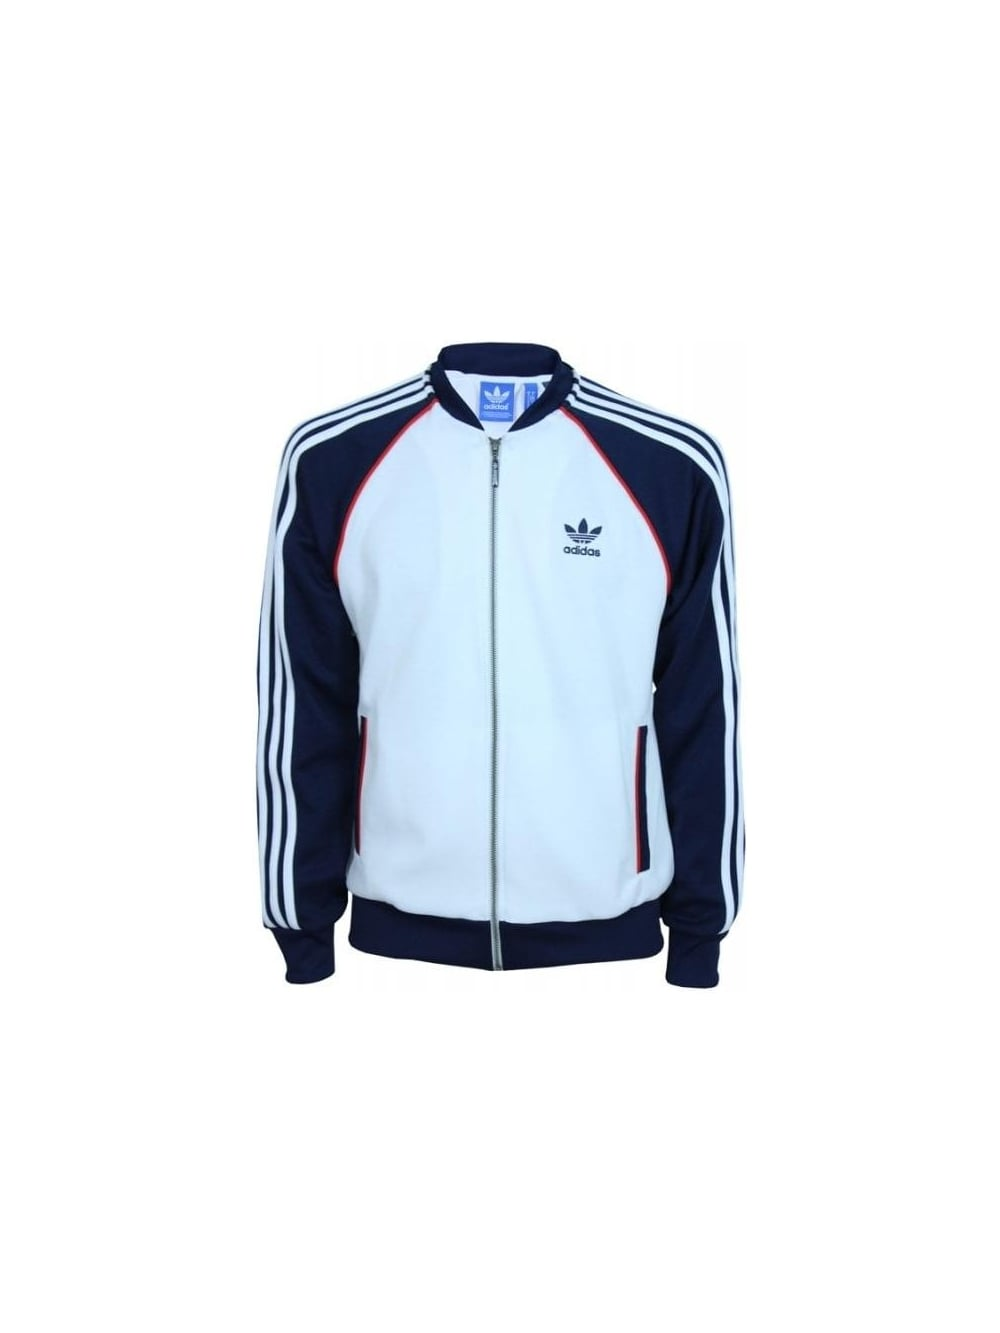 adidas Originals Superstar Track Jacket WhiteNavy